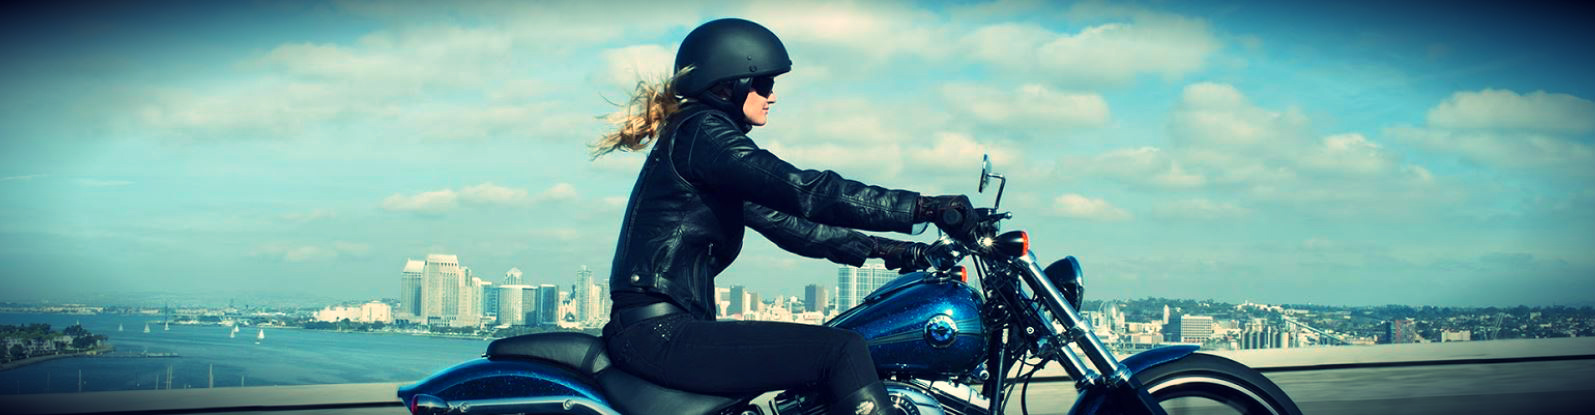 Top Motorcycle Safety Tips from 5-Ball Leathers